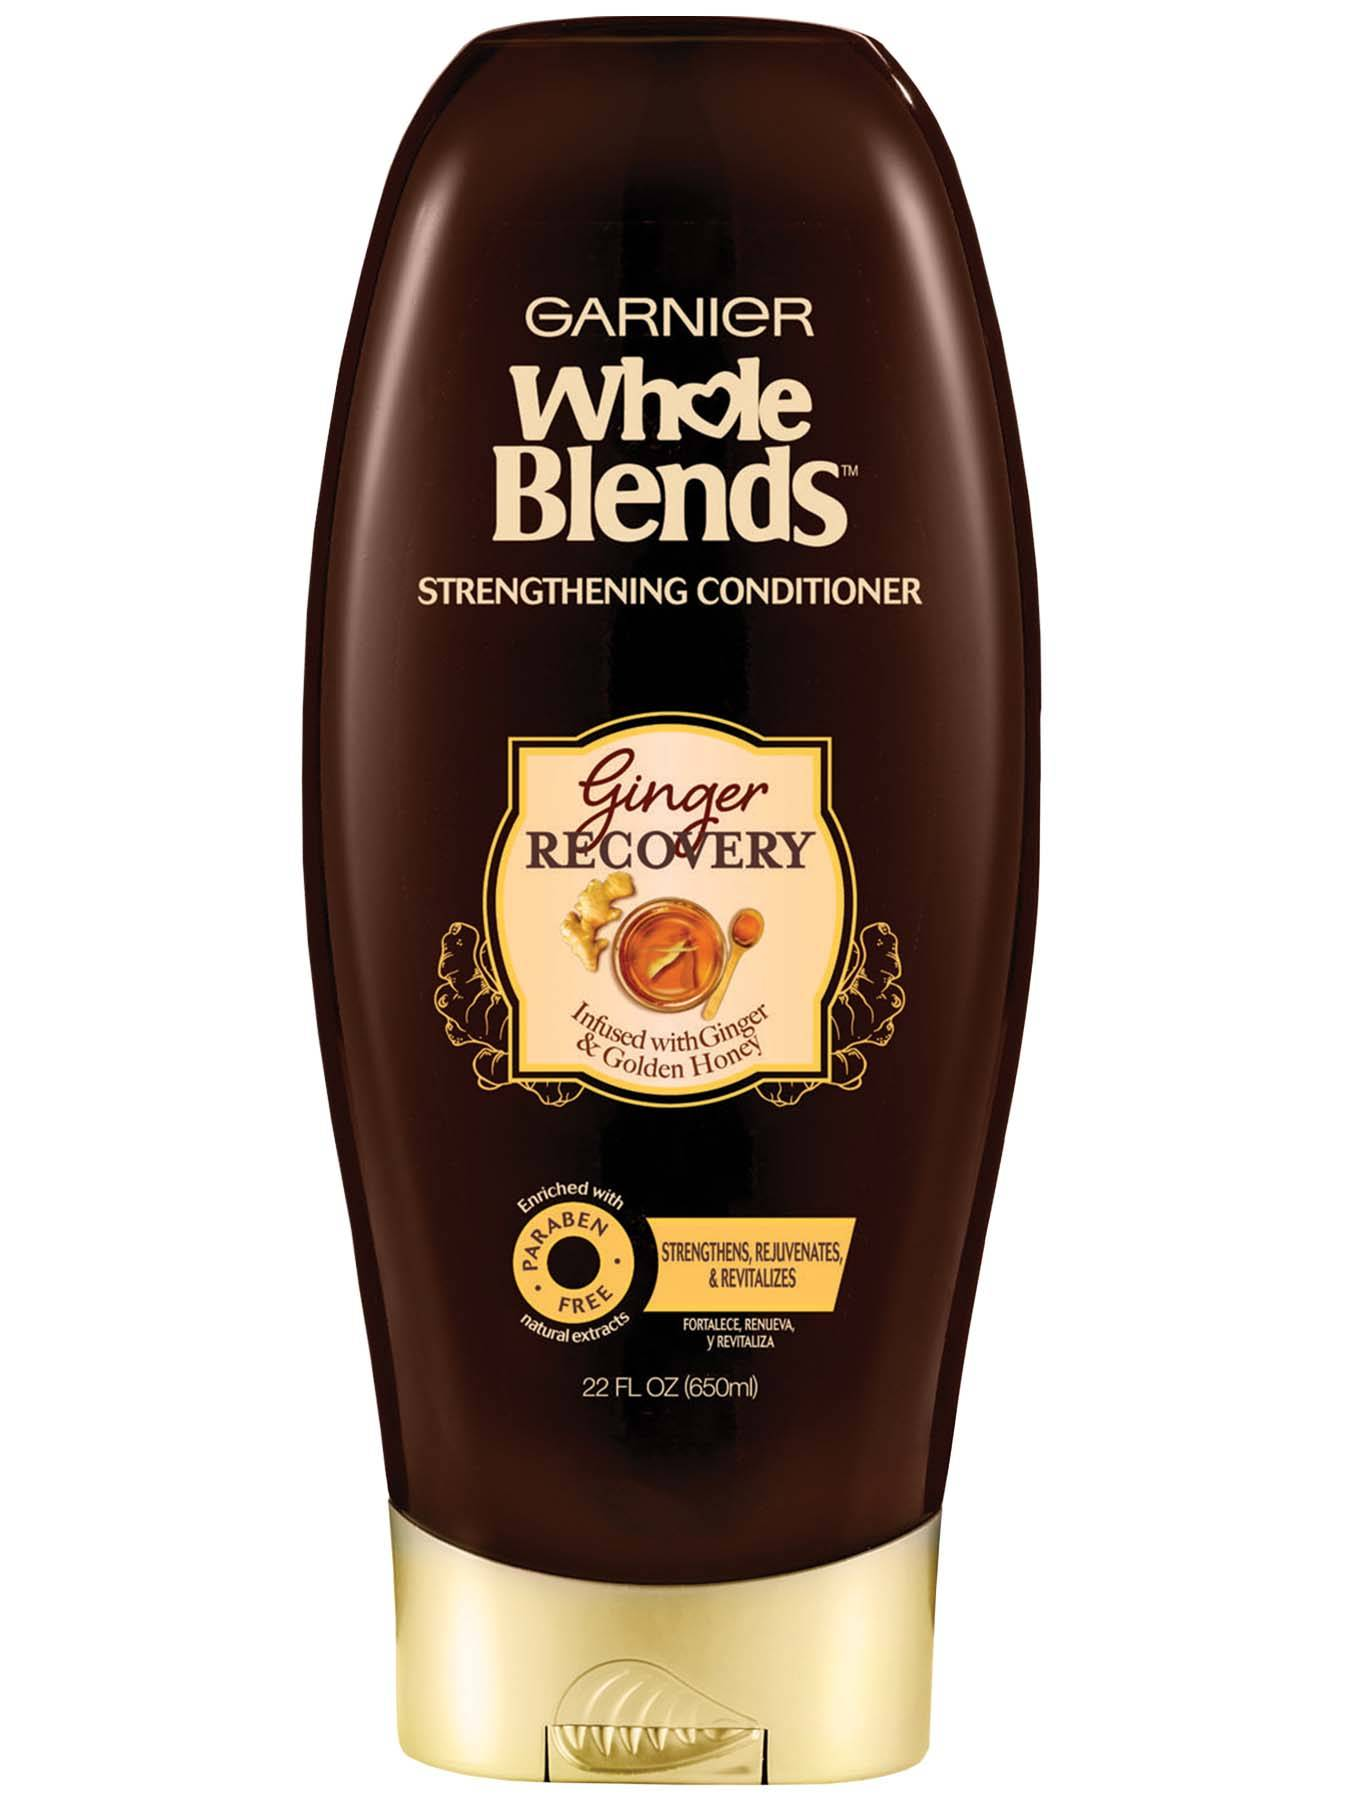 Front view of Whole Blends Ginger Recovery Strengthening Conditioner 22oz